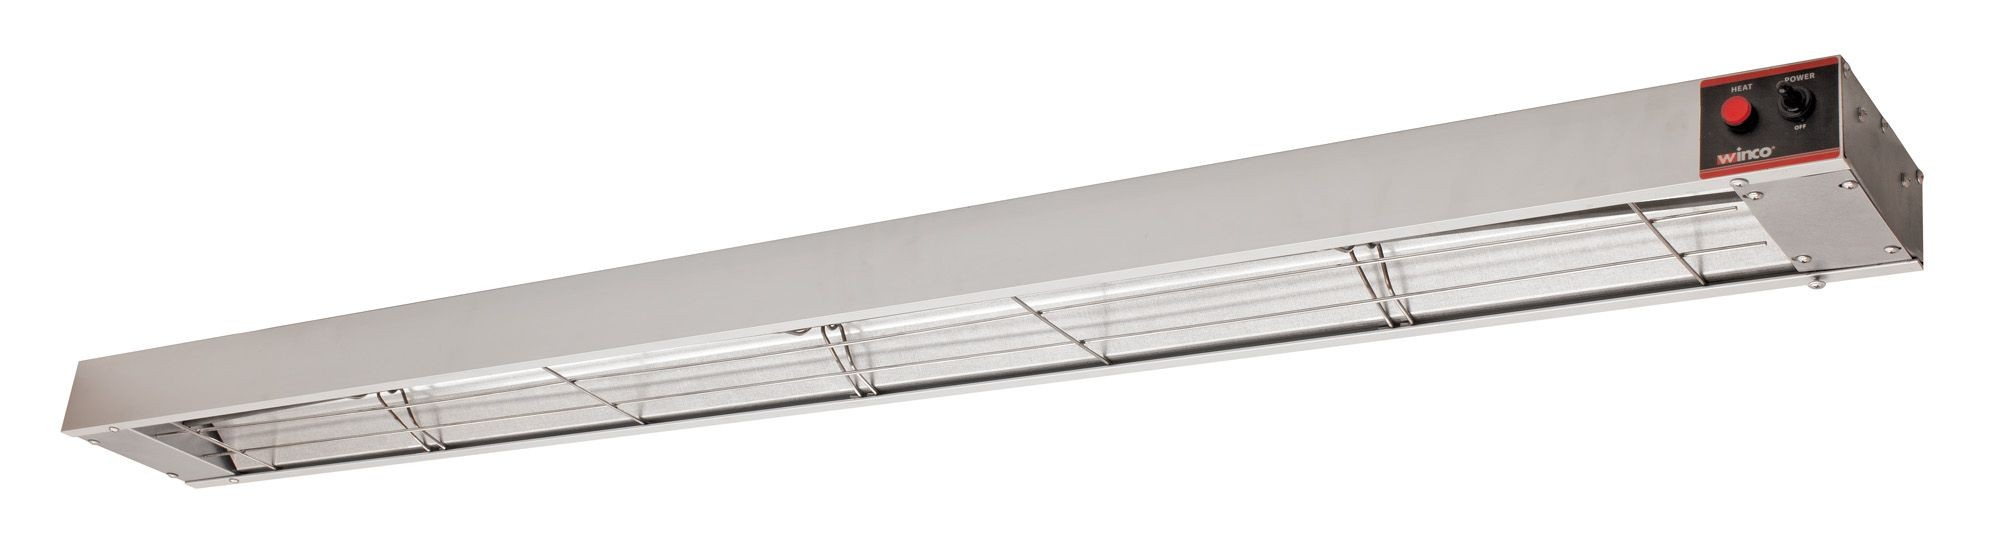 "Winco ESH-60 60"" Electric Infrared Strip Heater"